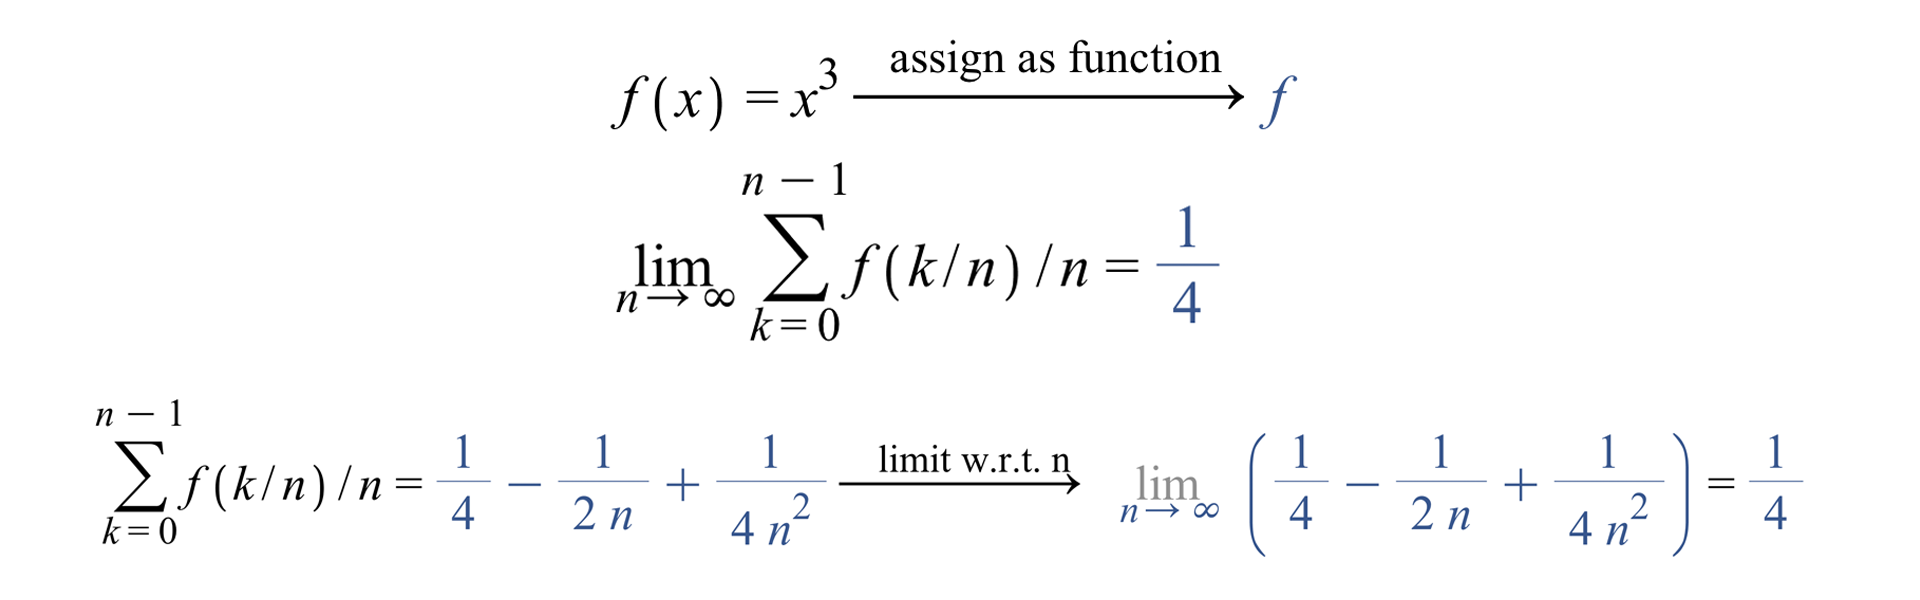 Syntax-free Maple implementation & Riemann sum and its limit